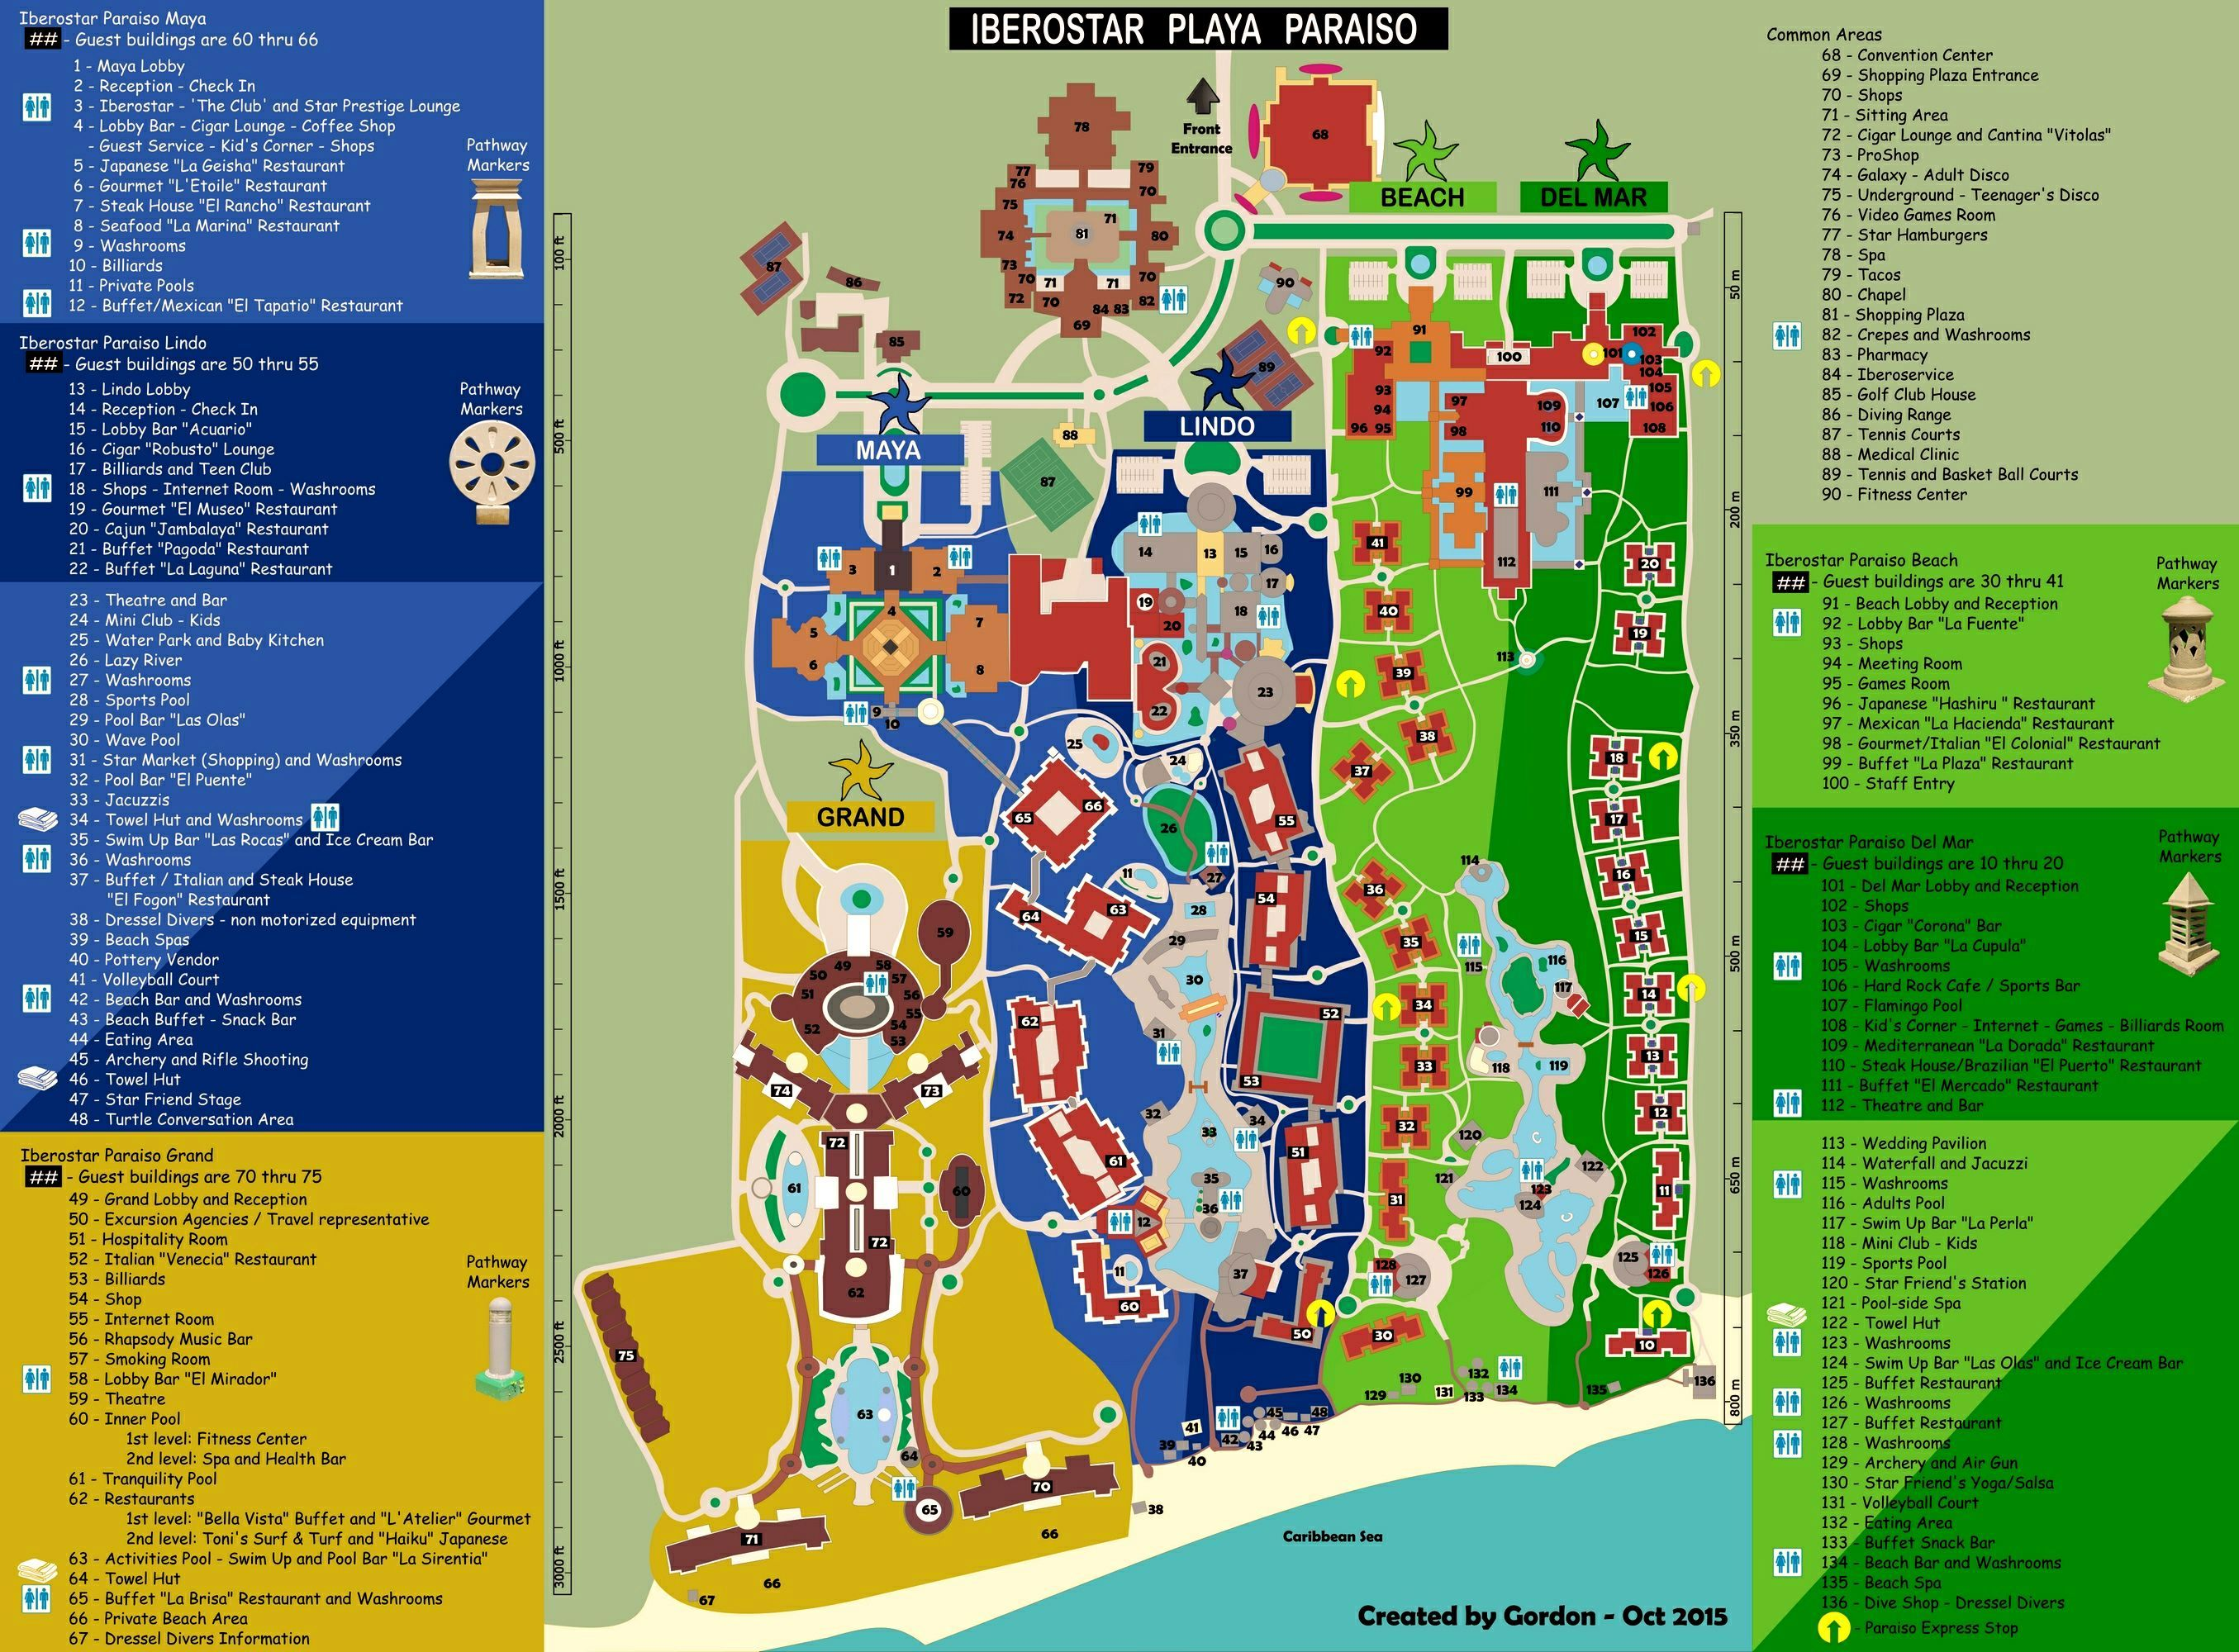 Iberostar Mexico Riviera Maya Resort Map